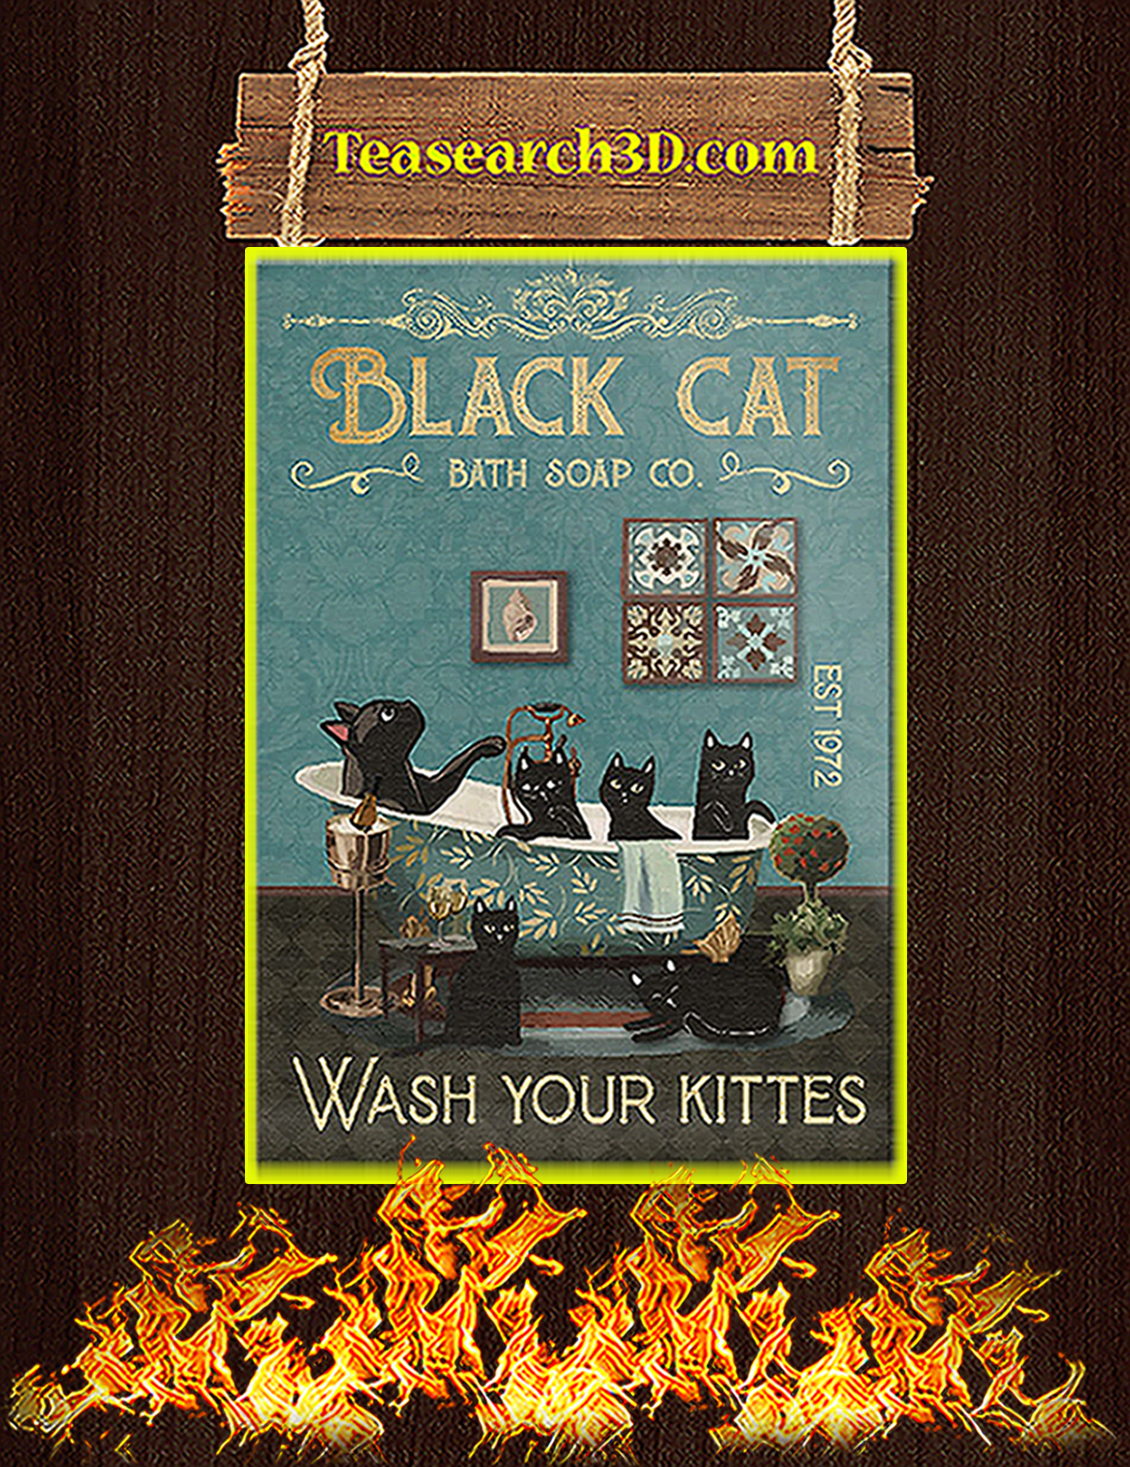 Black cat bath soap co wash your kittes poster A3